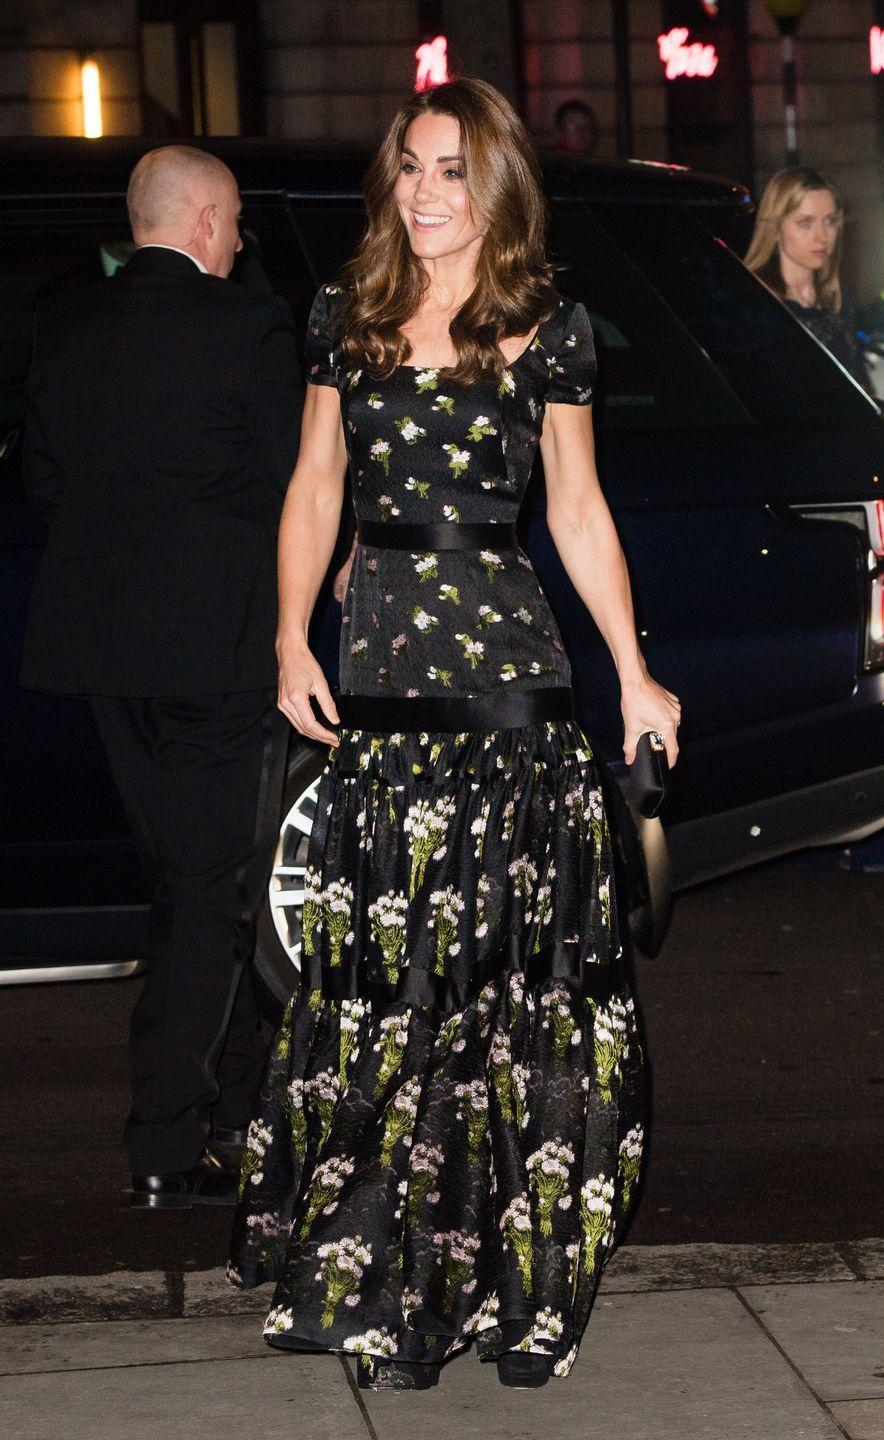 """<p>For the 2019 National Portrait Gallery Gala, Kate Middleton stepped out in an Alexander McQueen dress that appeared to be the same pretty floral print as the dress <a href=""""https://www.harpersbazaar.com/celebrity/latest/a26799533/kate-middleton-alexander-mcqueen-national-portrait-gala-2019/#:~:text=Kate%20Middleton%20stepped%20out%20to,Portrait%20Gallery%20since%20January%202012."""" rel=""""nofollow noopener"""" target=""""_blank"""" data-ylk=""""slk:she wore to the 2017 BAFTAs"""" class=""""link rapid-noclick-resp"""">she wore to the 2017 BAFTAs</a>.</p><p>When spectators realized the two different dresses looked almost the same, it spurred a flurry of internet chatter about the frivolity of buying two super similar dresses. The palace has yet to comment on the matter.</p>"""